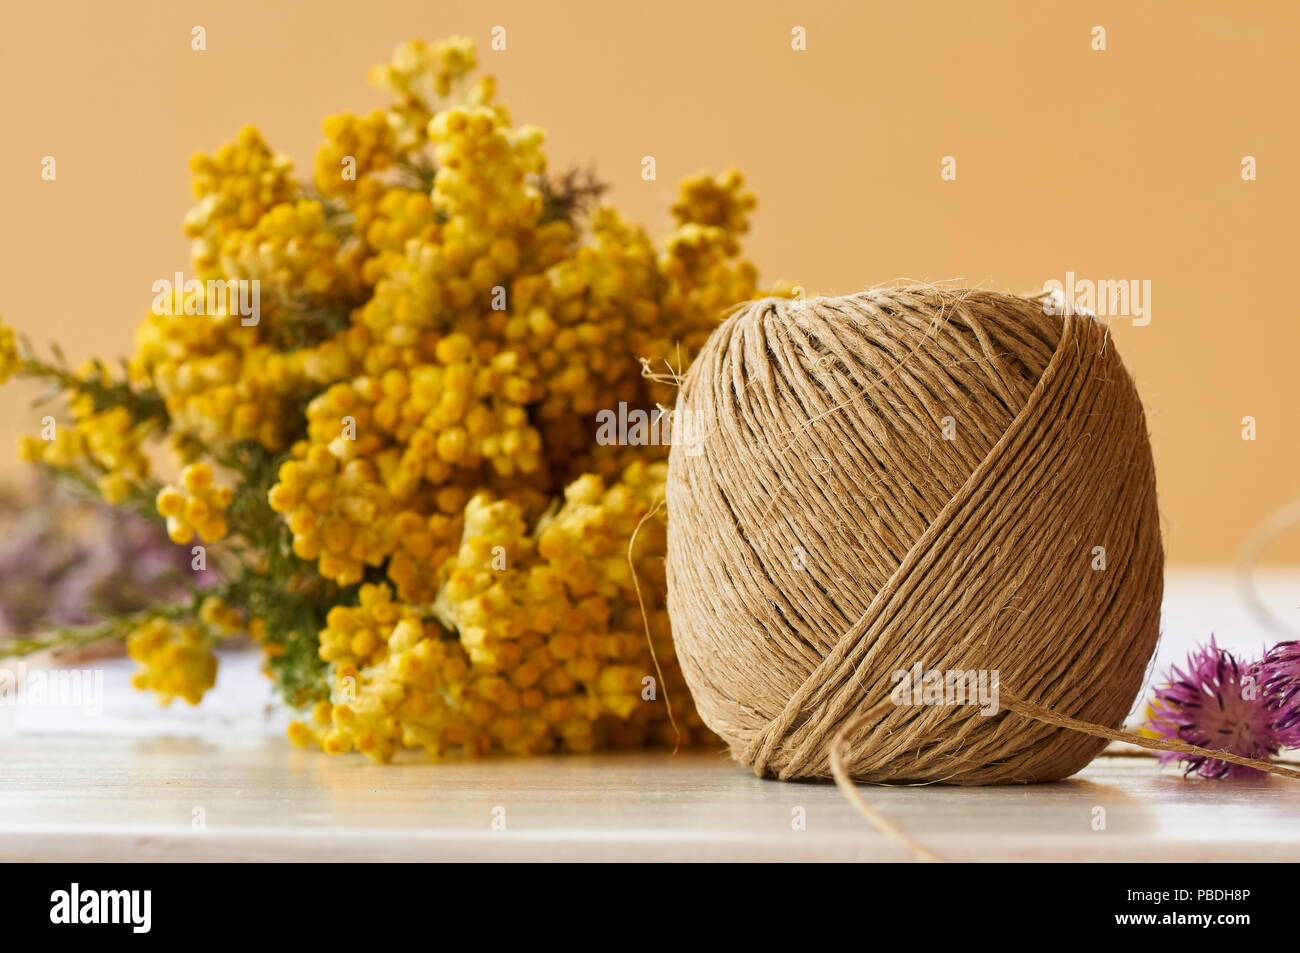 Cord skein and common shrubby everlasting (Helichrysum stoechas) yellow flowers over a table ready for preparing a flowers bouquet (Formentera,Spain) - Stock Image